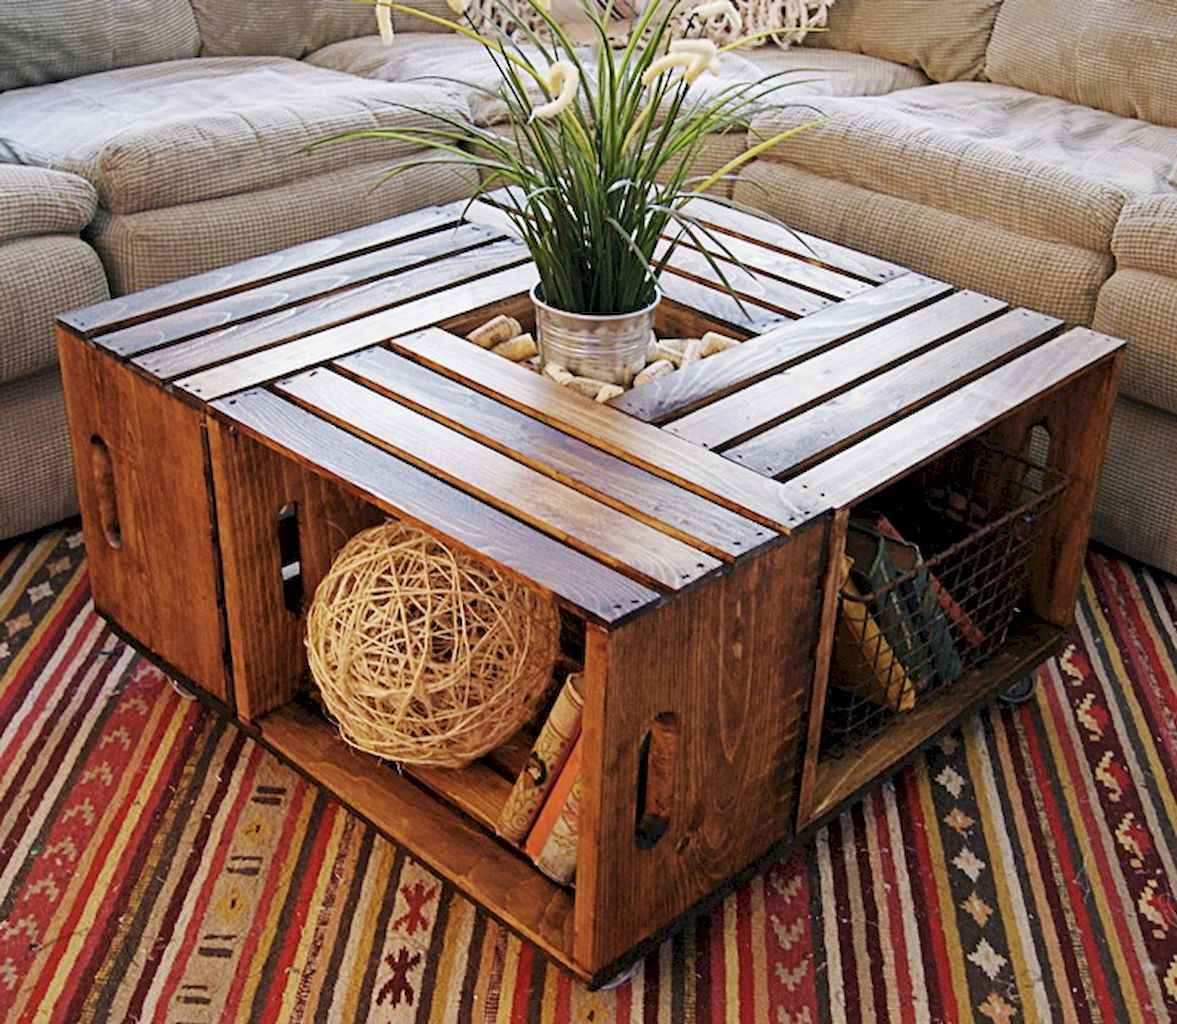 Rustic farmhouse coffee table ideas (70)